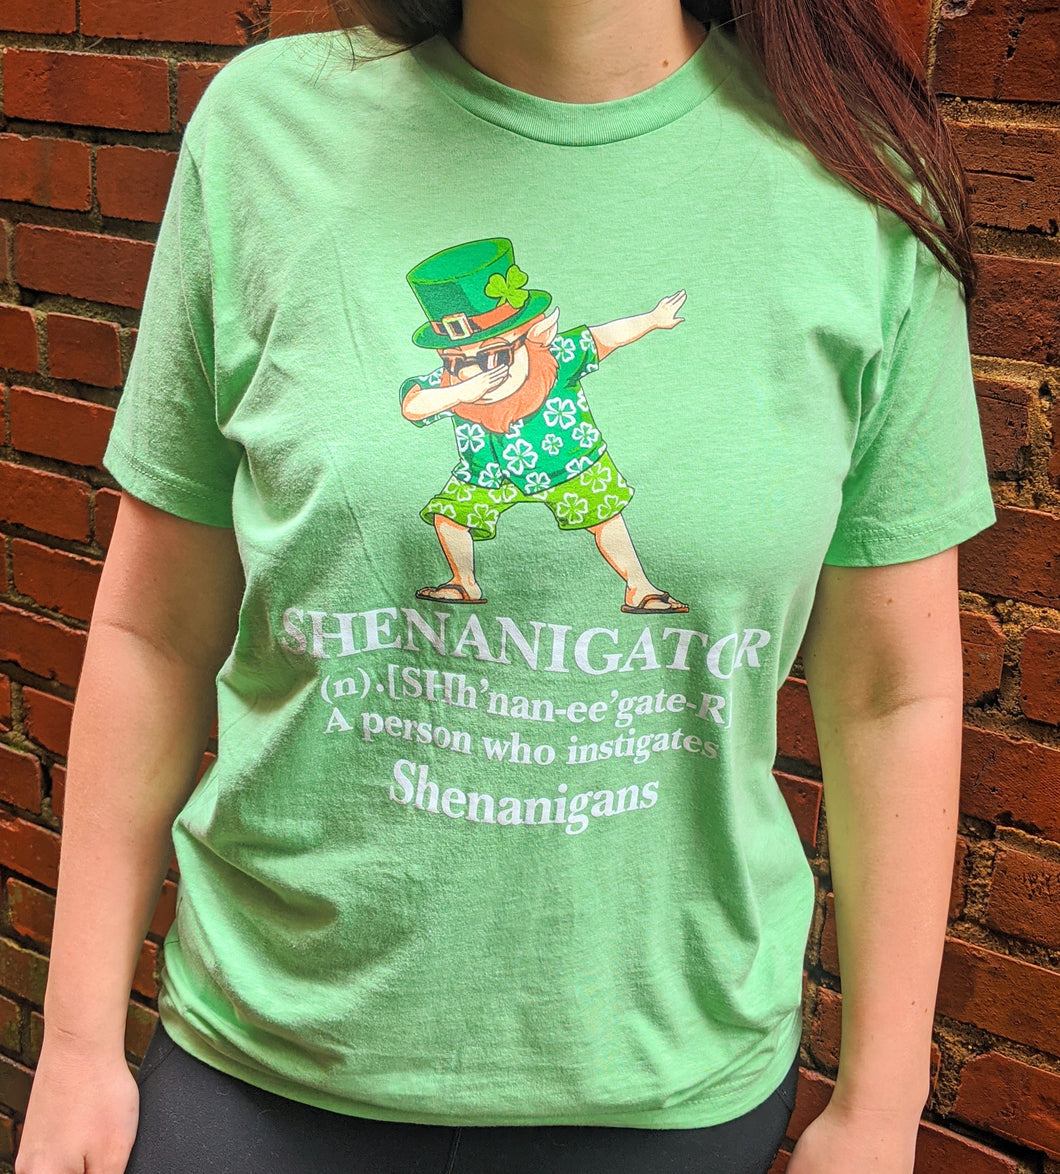 Shenanigator Tee - Apple Green